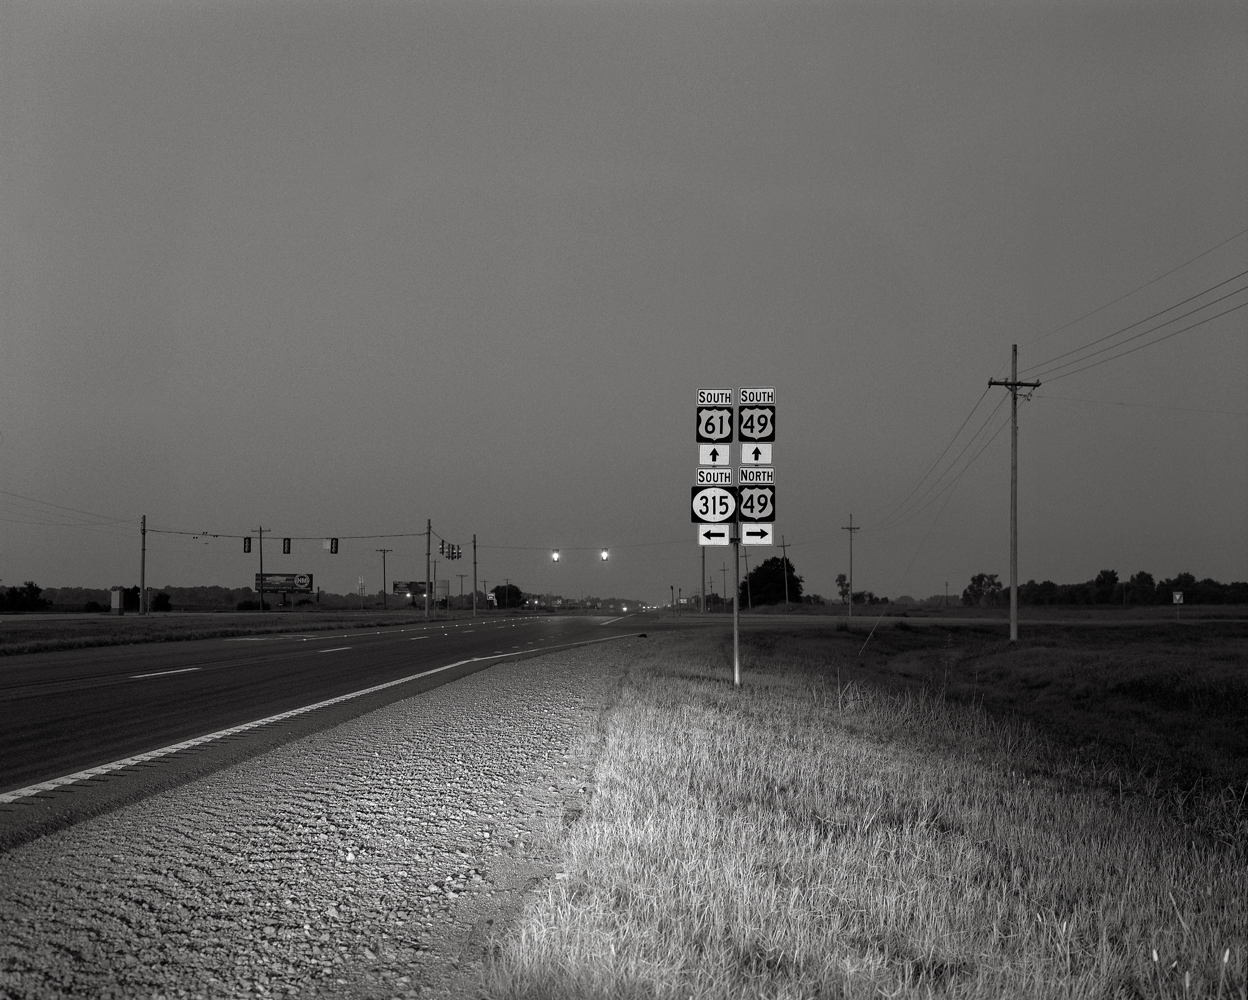 At a Crossroads, near Clarksdale, Mississippi